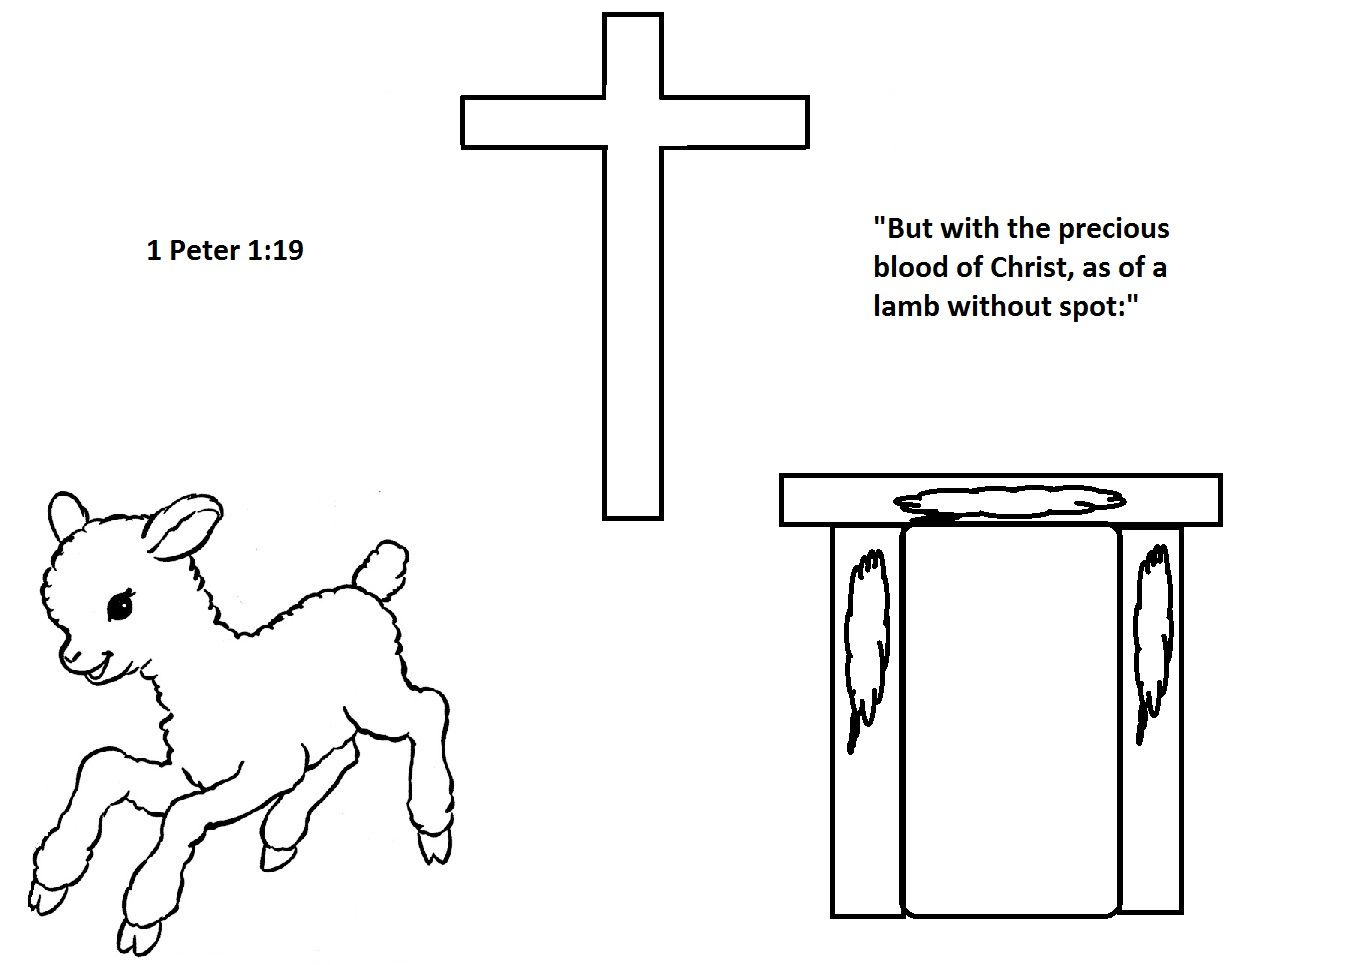 A Coloring Page I Created To Reinforce The Passover Account